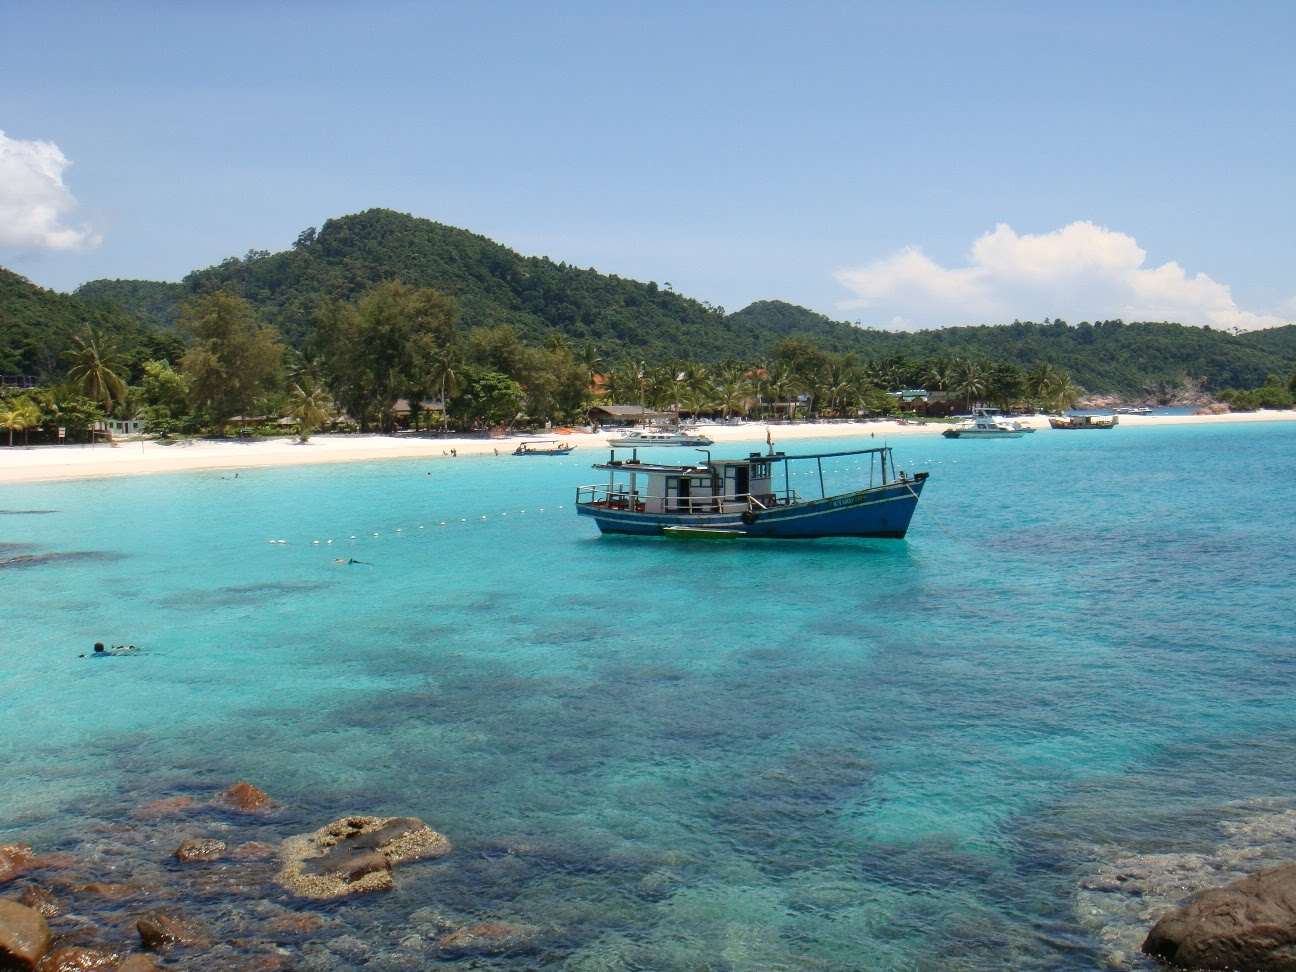 pulau redang Hen translated from bahasa malaysia, pulau lang tengah means an eagle resting on the middle island pulau lang tengah is between pulau perhentian and pulau redang.